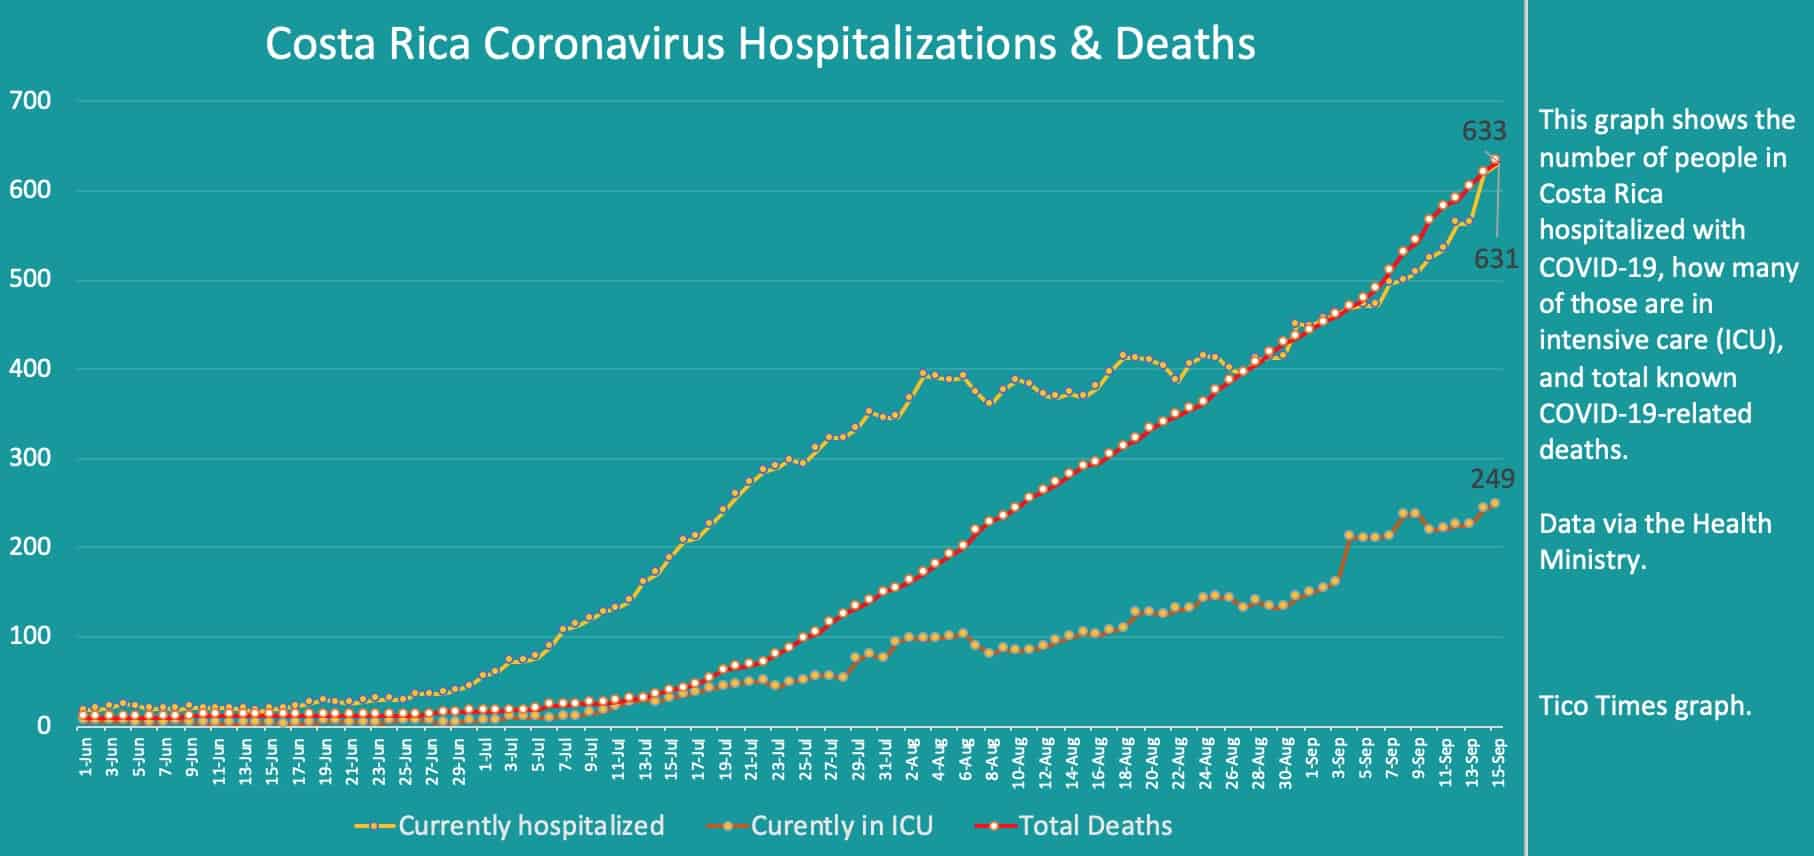 Costa Rica coronavirus hospitalizations and deaths on September 15, 2020